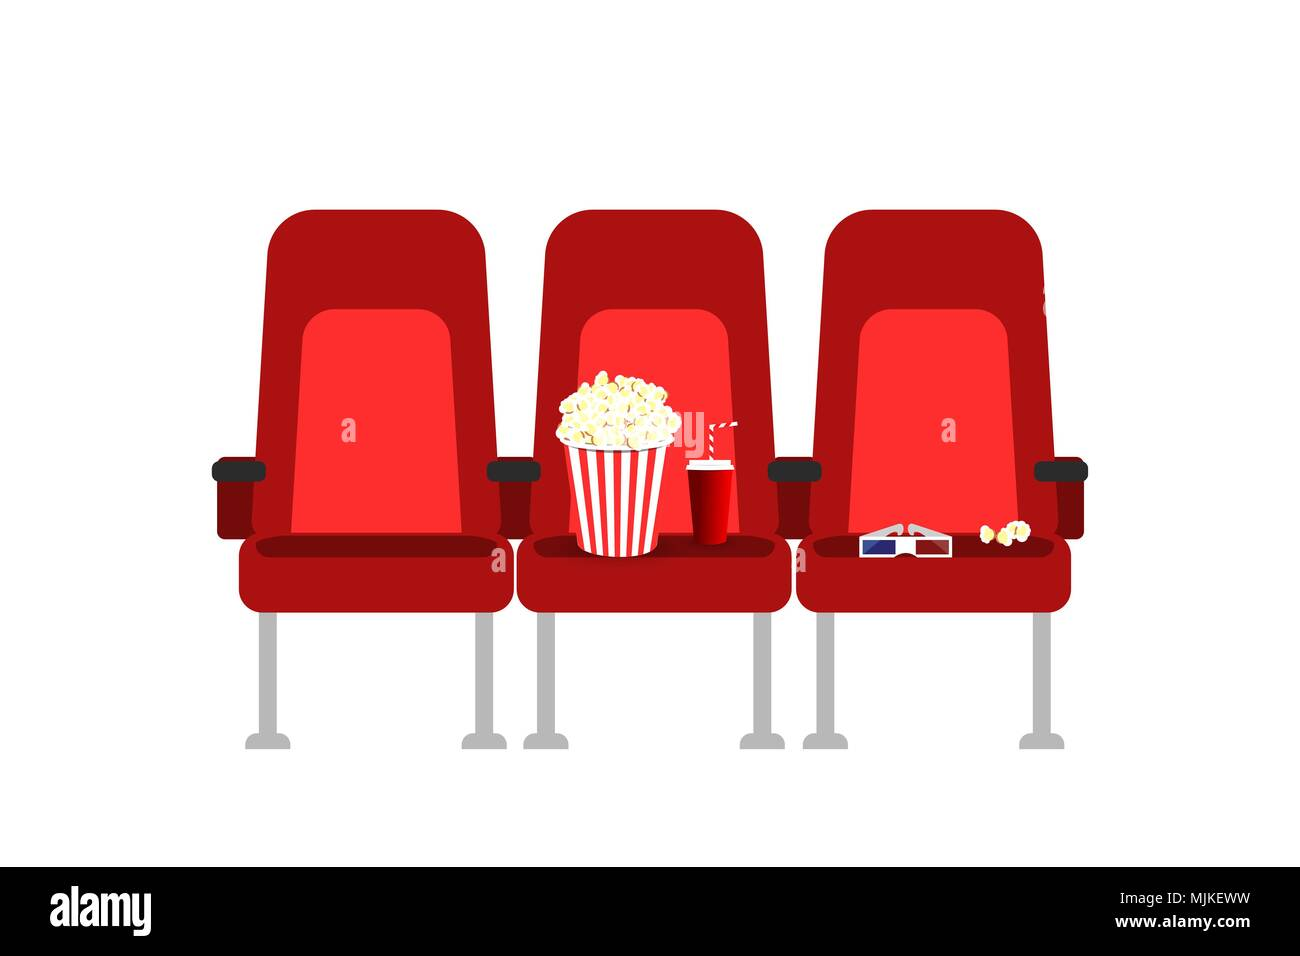 Cinema seats in a movie with popcorn, drinks and glasses. Flat vector cartoon Cinema seats illustration. Movie cinema premiere poster concept design. Show time. - Stock Image